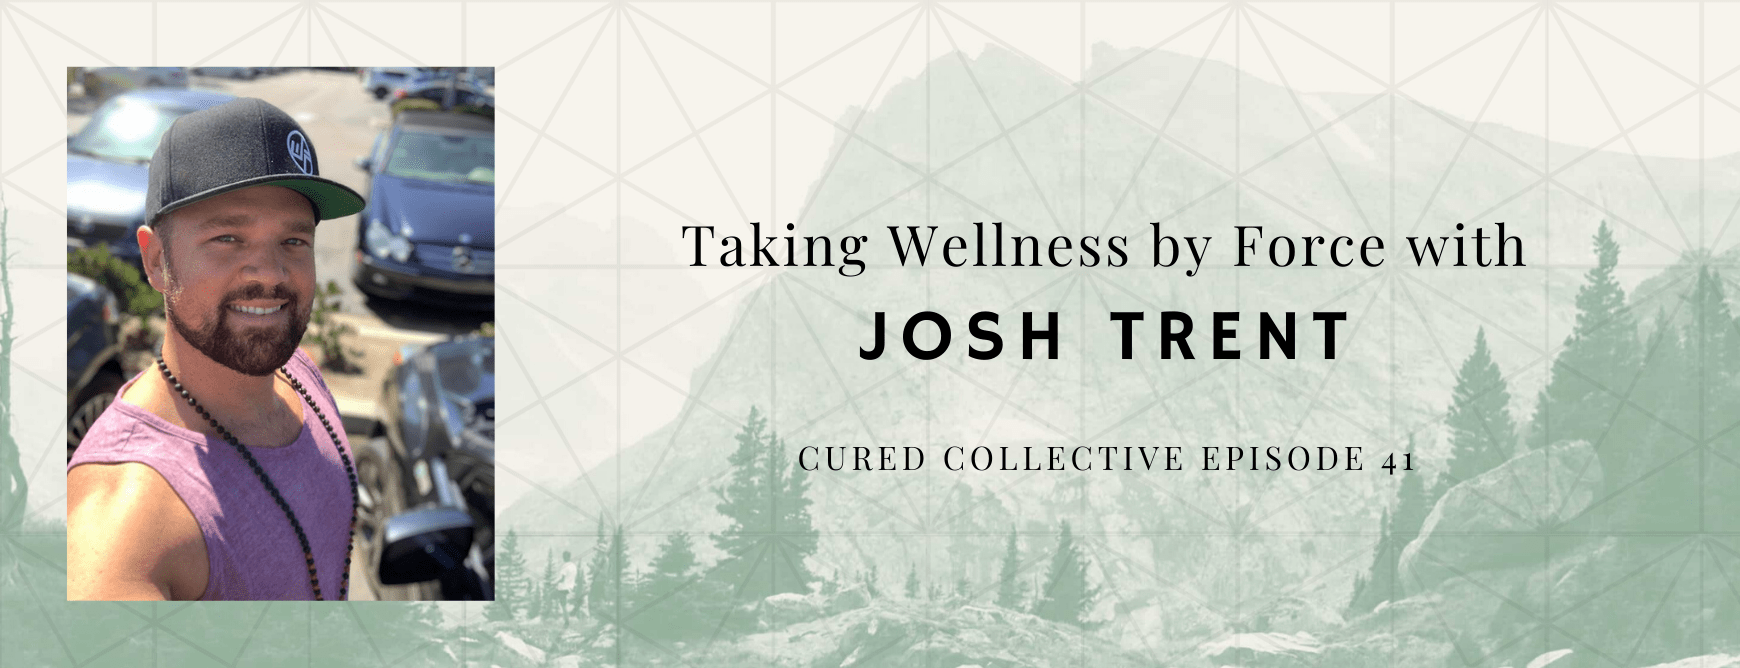 Cured Collective CBD Podcast with Josh Trent